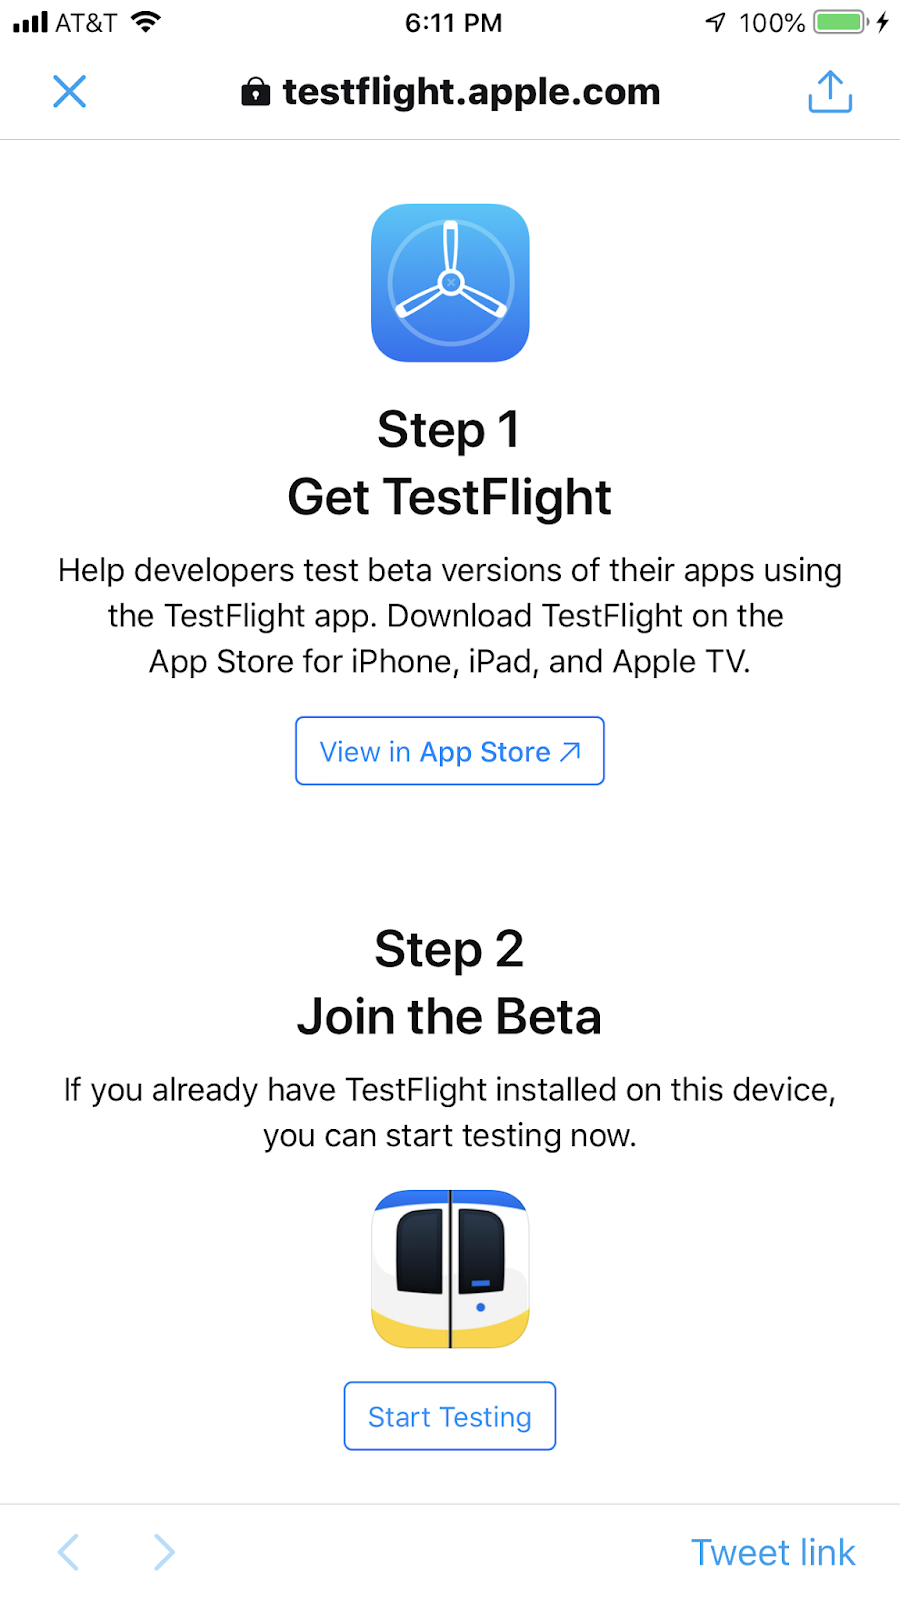 PDX Bus - a free Open Source iPhone app for Portland bus and